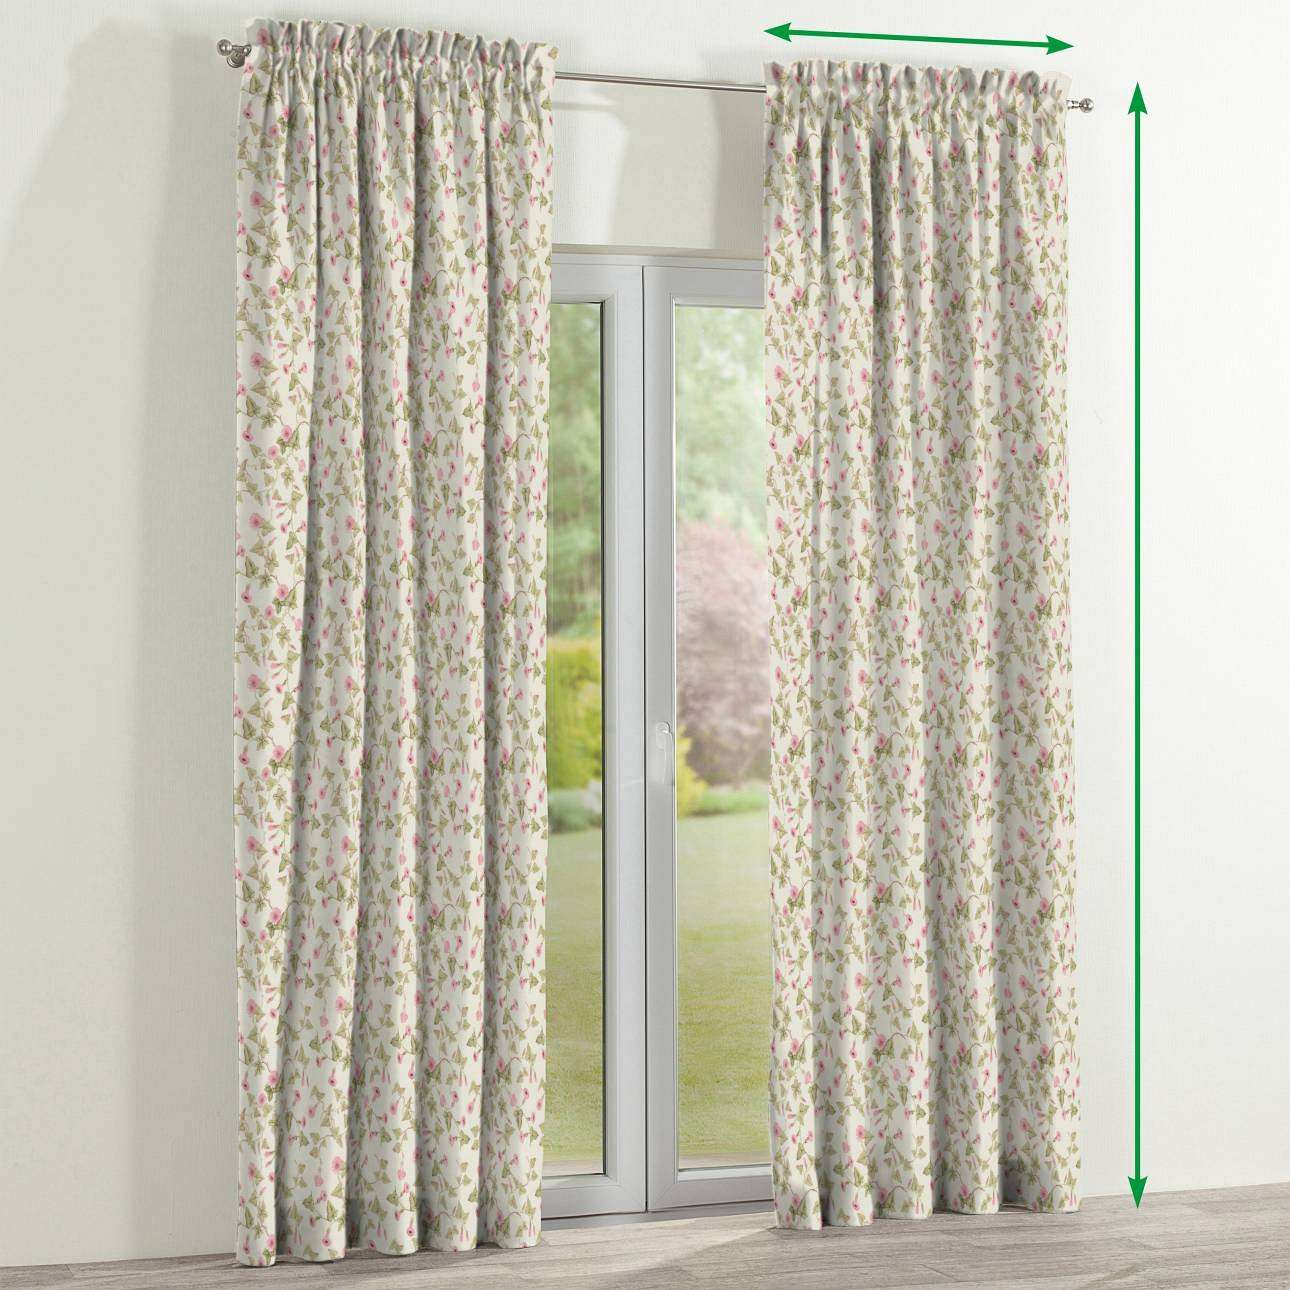 Slot and frill lined curtains in collection Mirella, fabric: 140-41